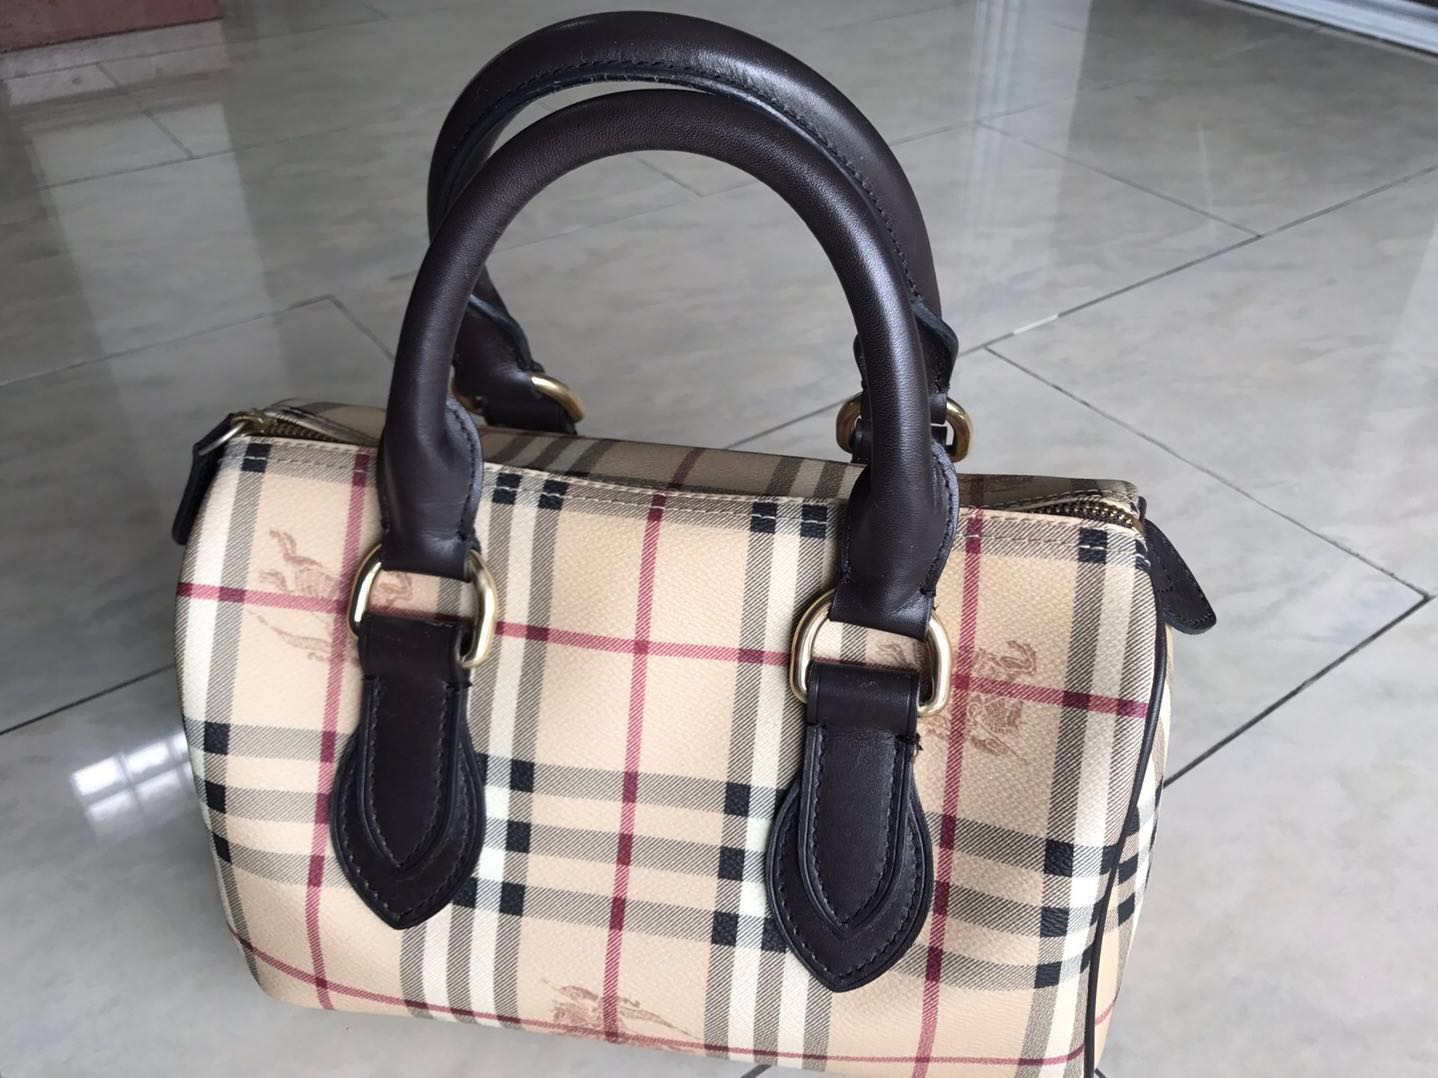 304f0aeafd2 (Authentic) Burberry Boston Bag, Luxury, Bags & Wallets, Handbags on  Carousell